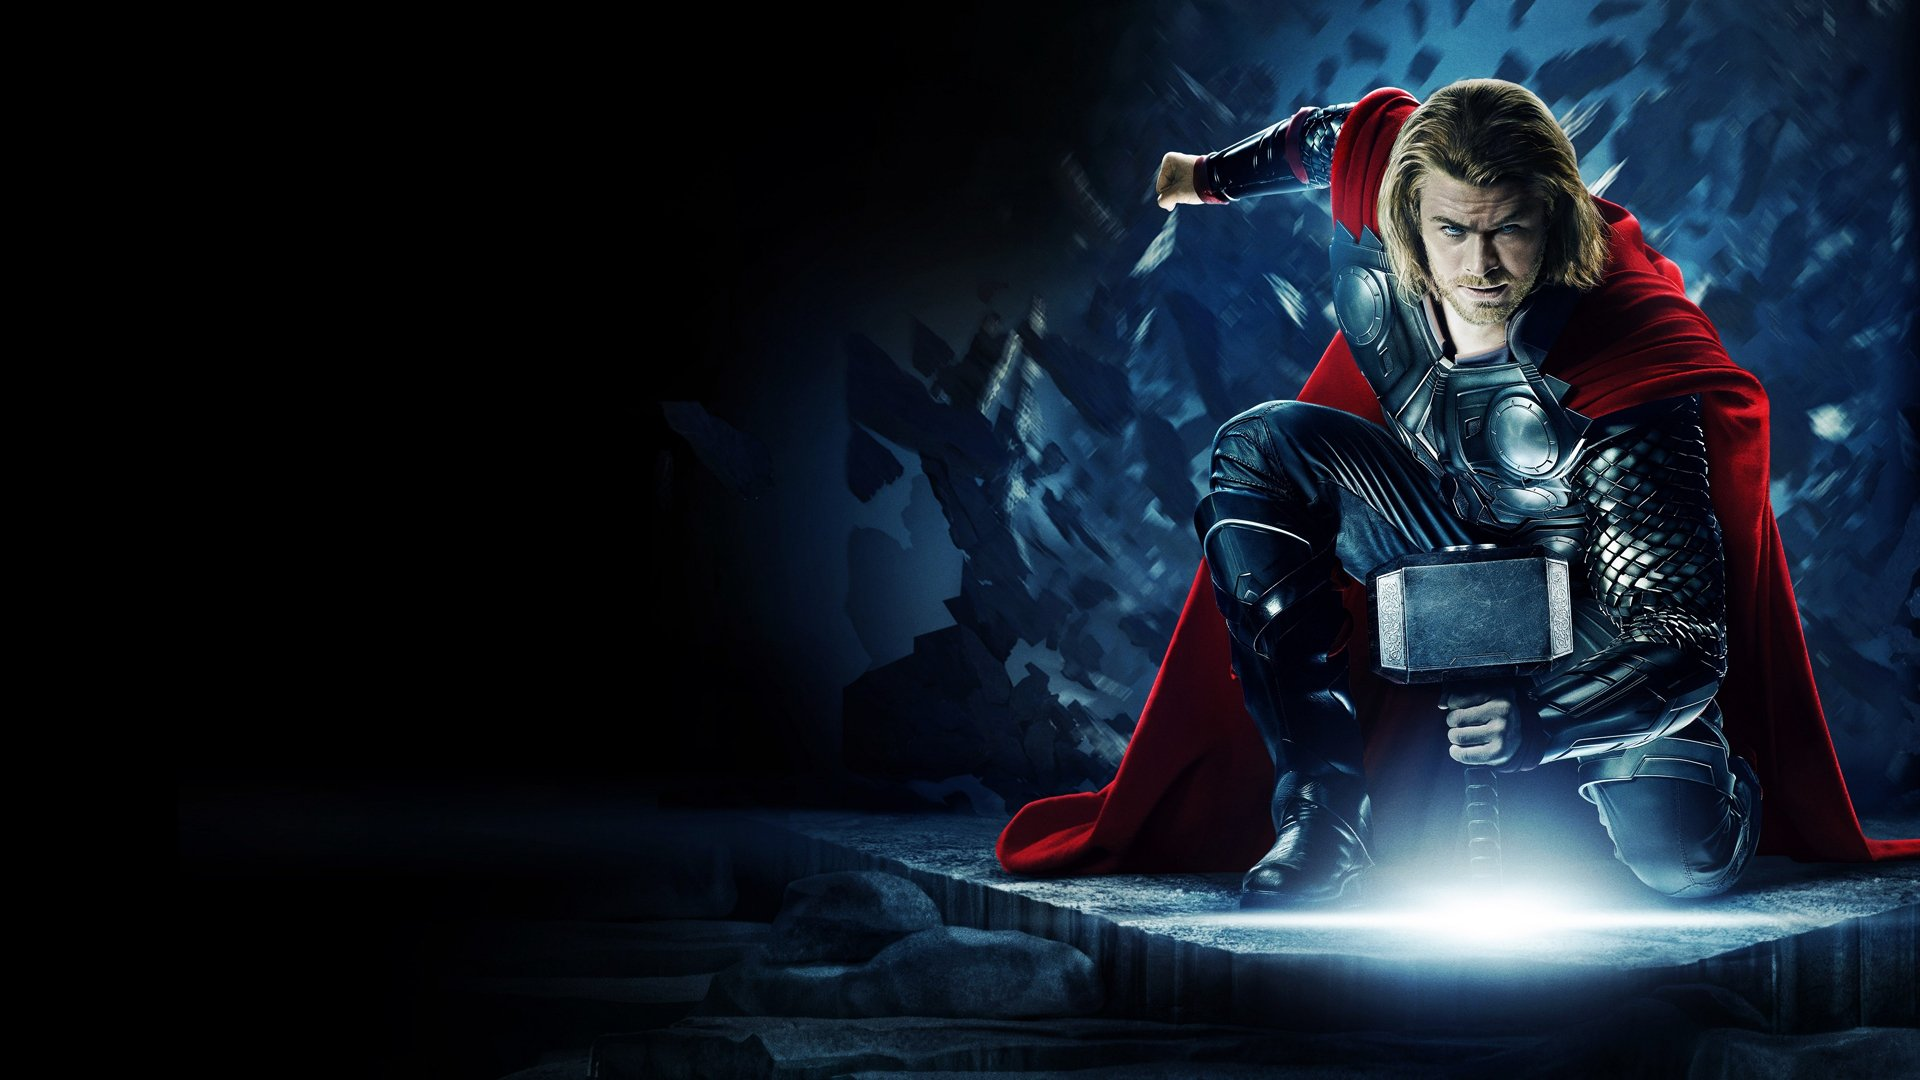 Thor wallpaper 1920x1080 2   hebusorg   High Definition Wallpapers 1920x1080